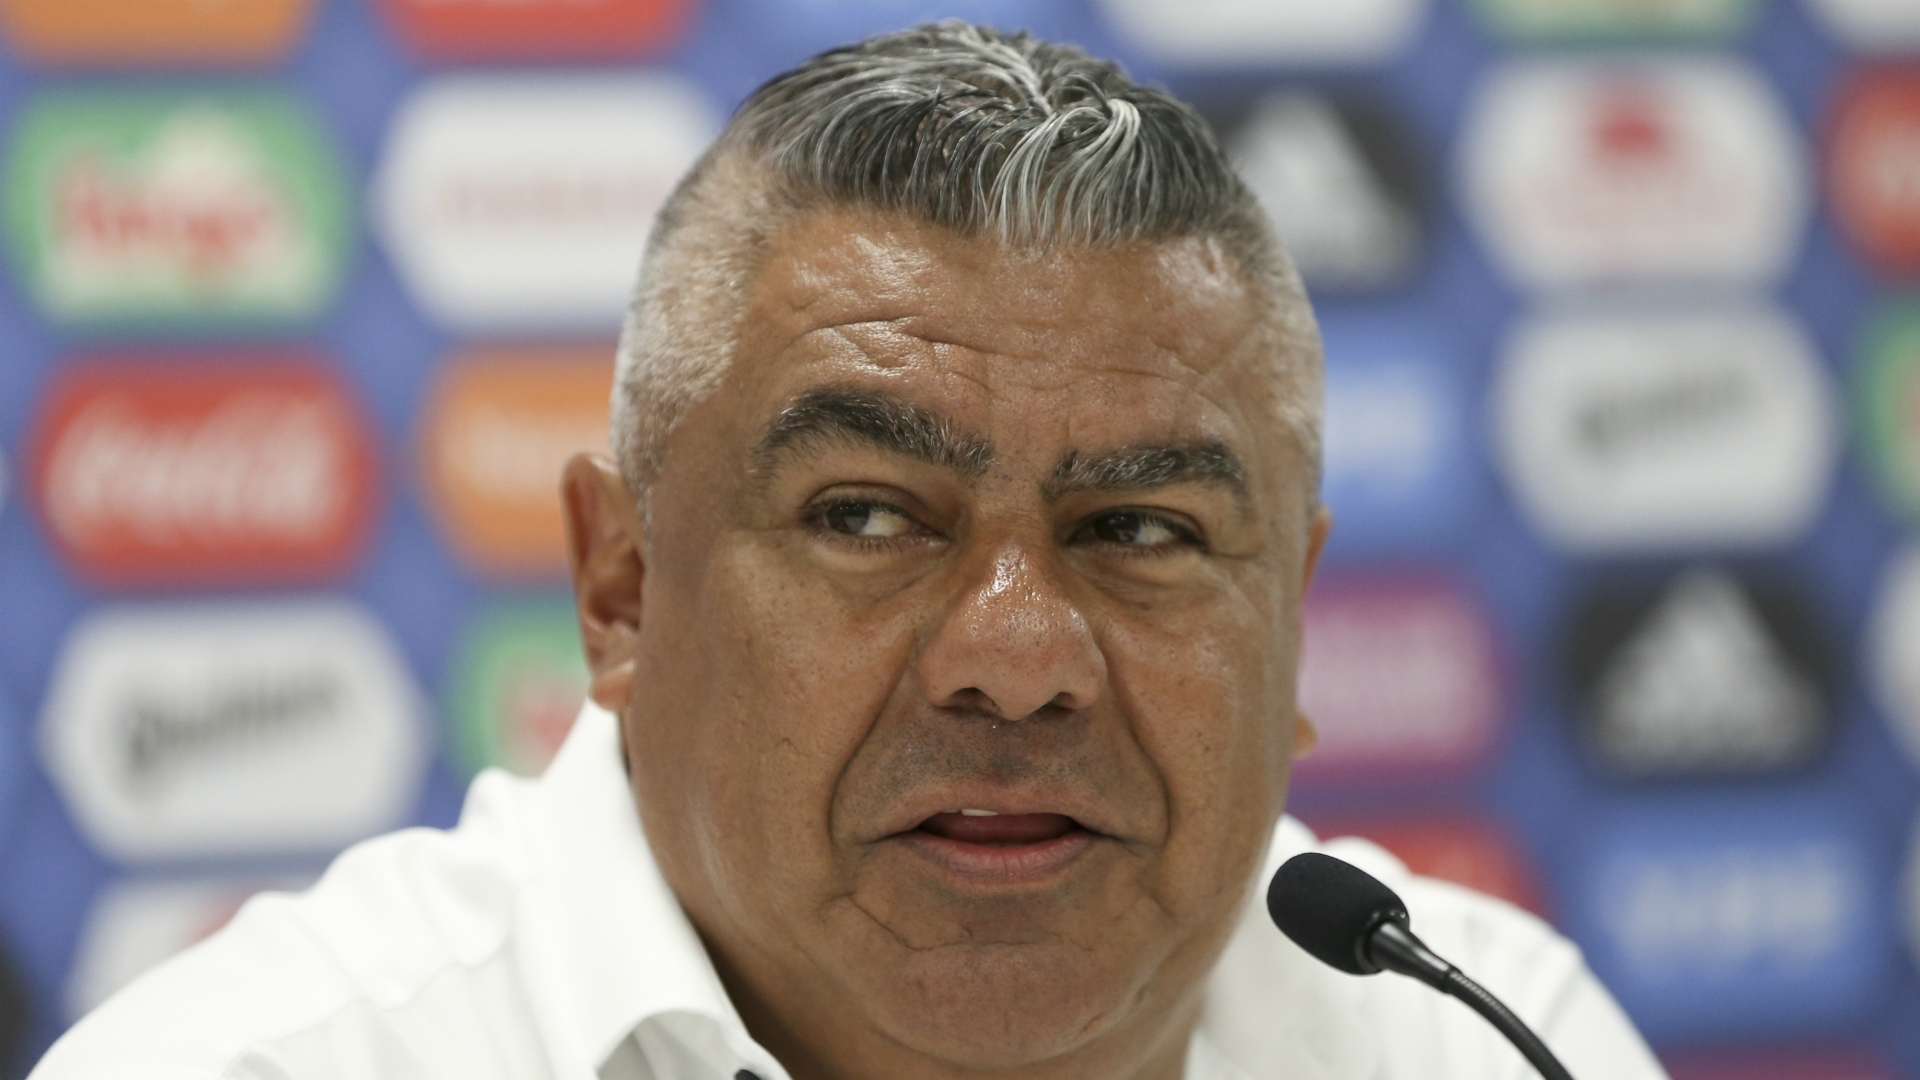 Guardiola disappointed with AFA president Tapia over salary comments